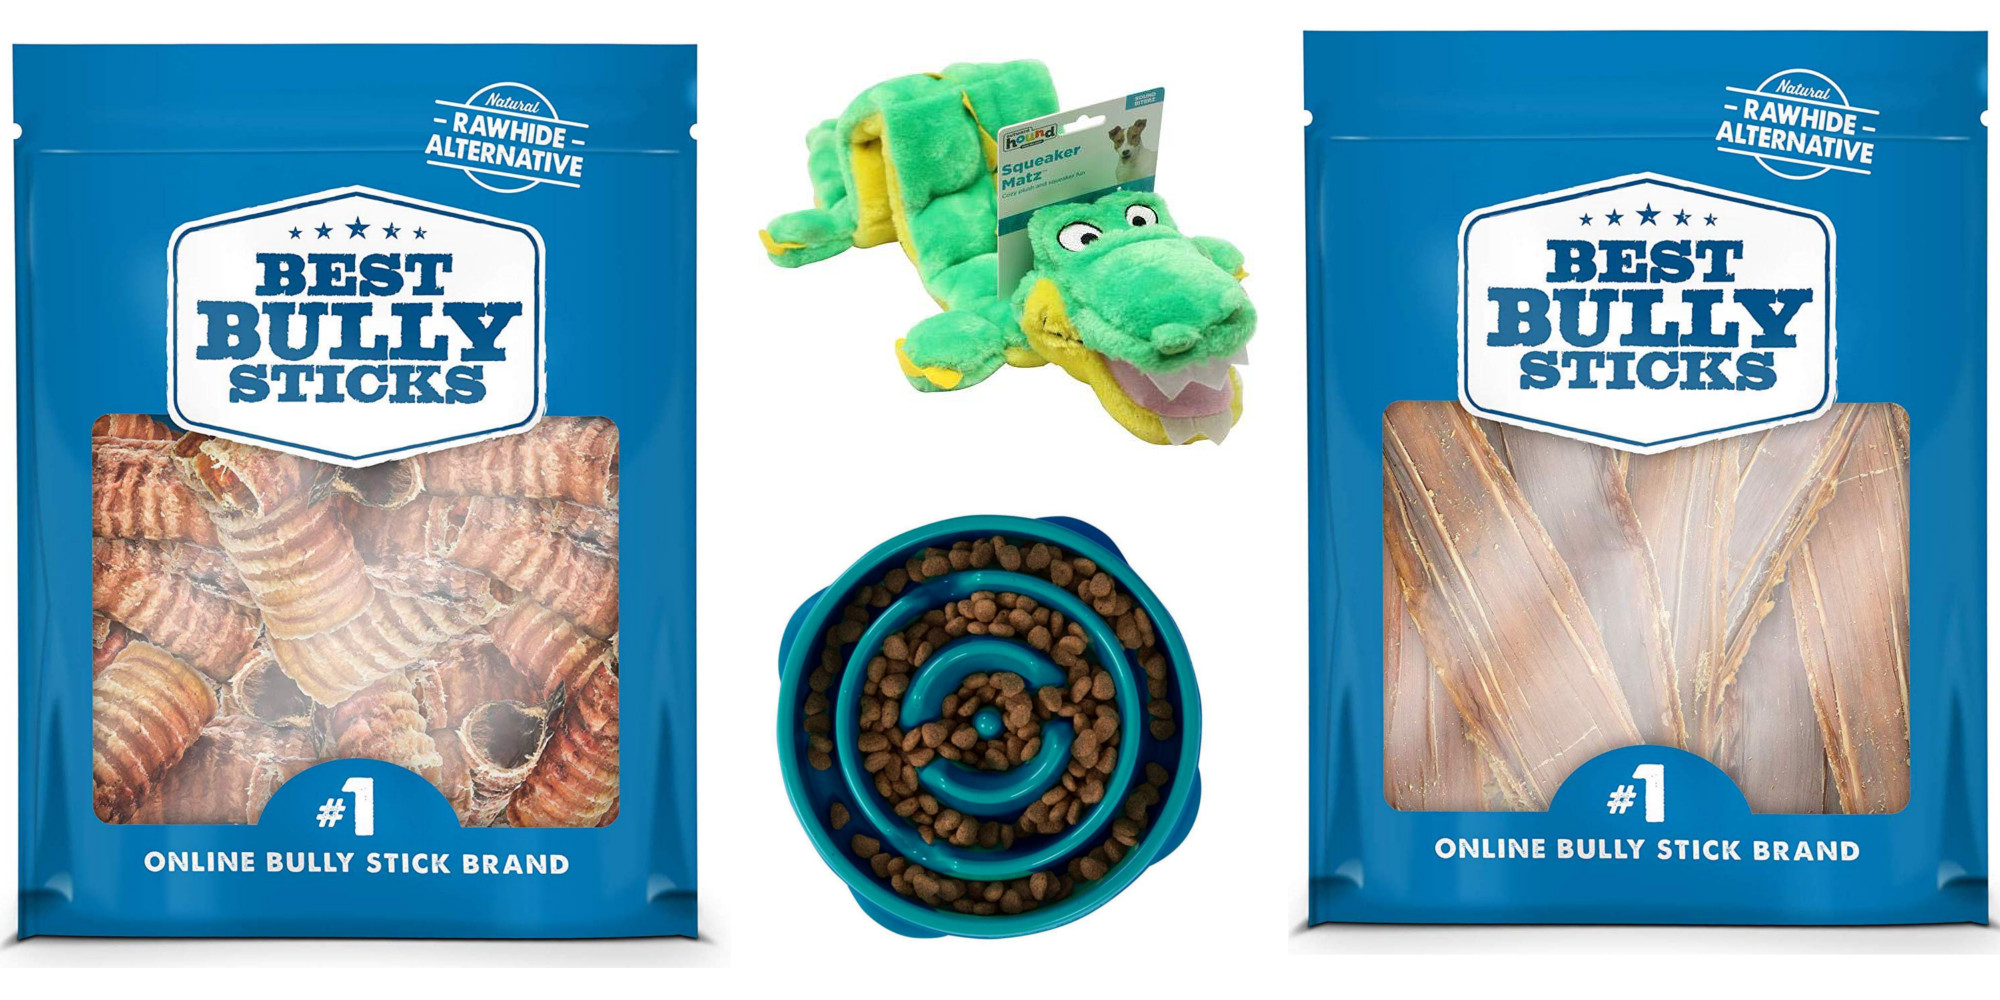 Amazon offers up to 35% off dog treats, toys, bowls, more from $6